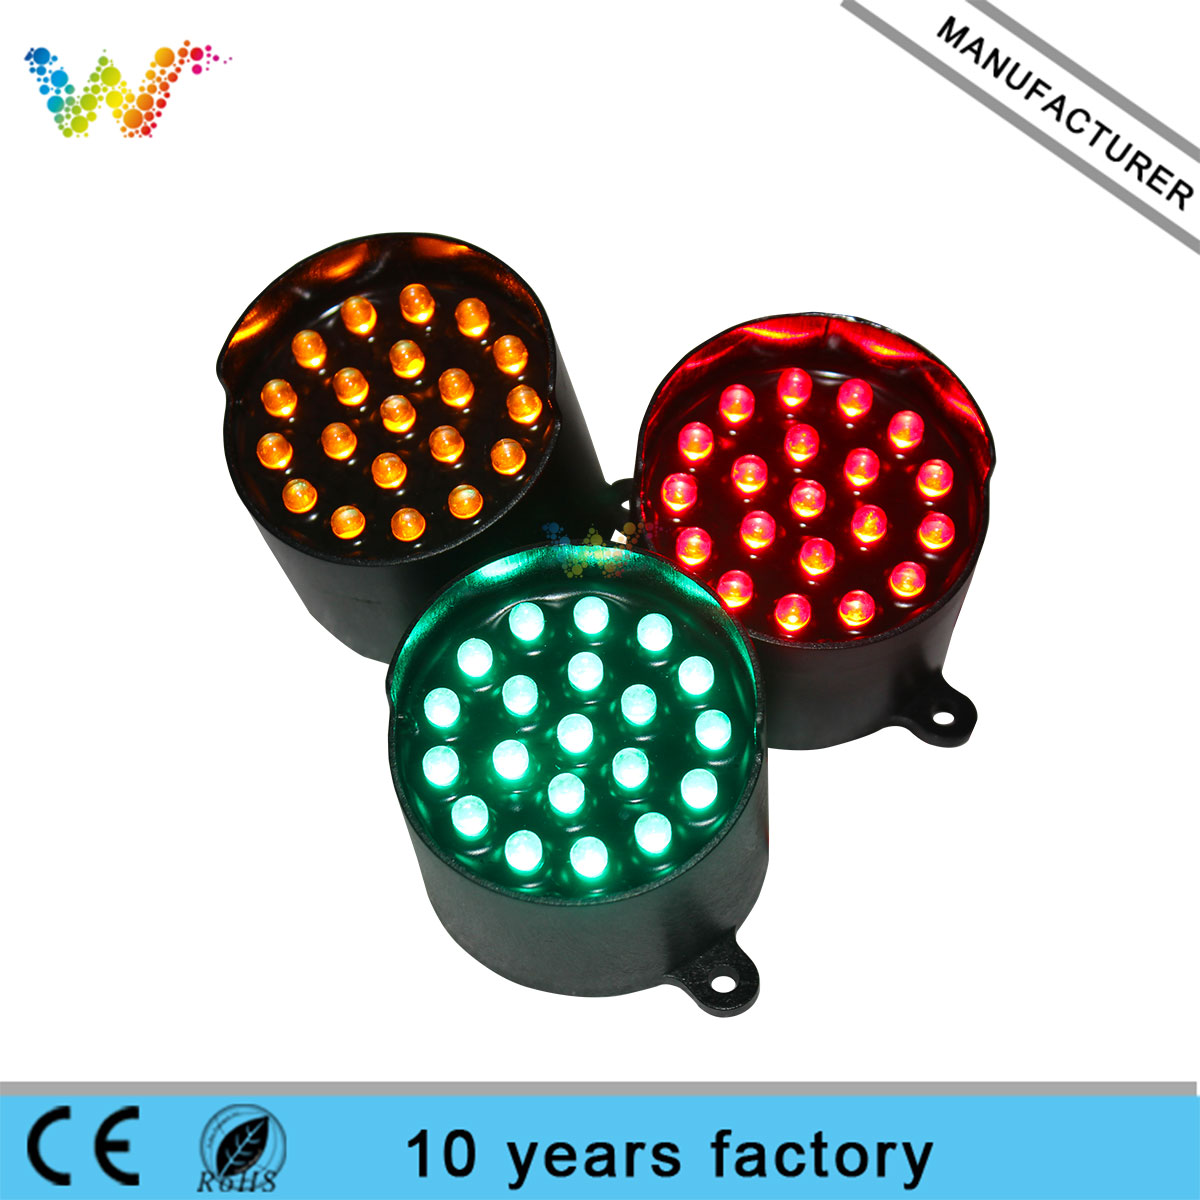 52mm Diameter Led Pixel Cluster for Traffic Guide Indicator